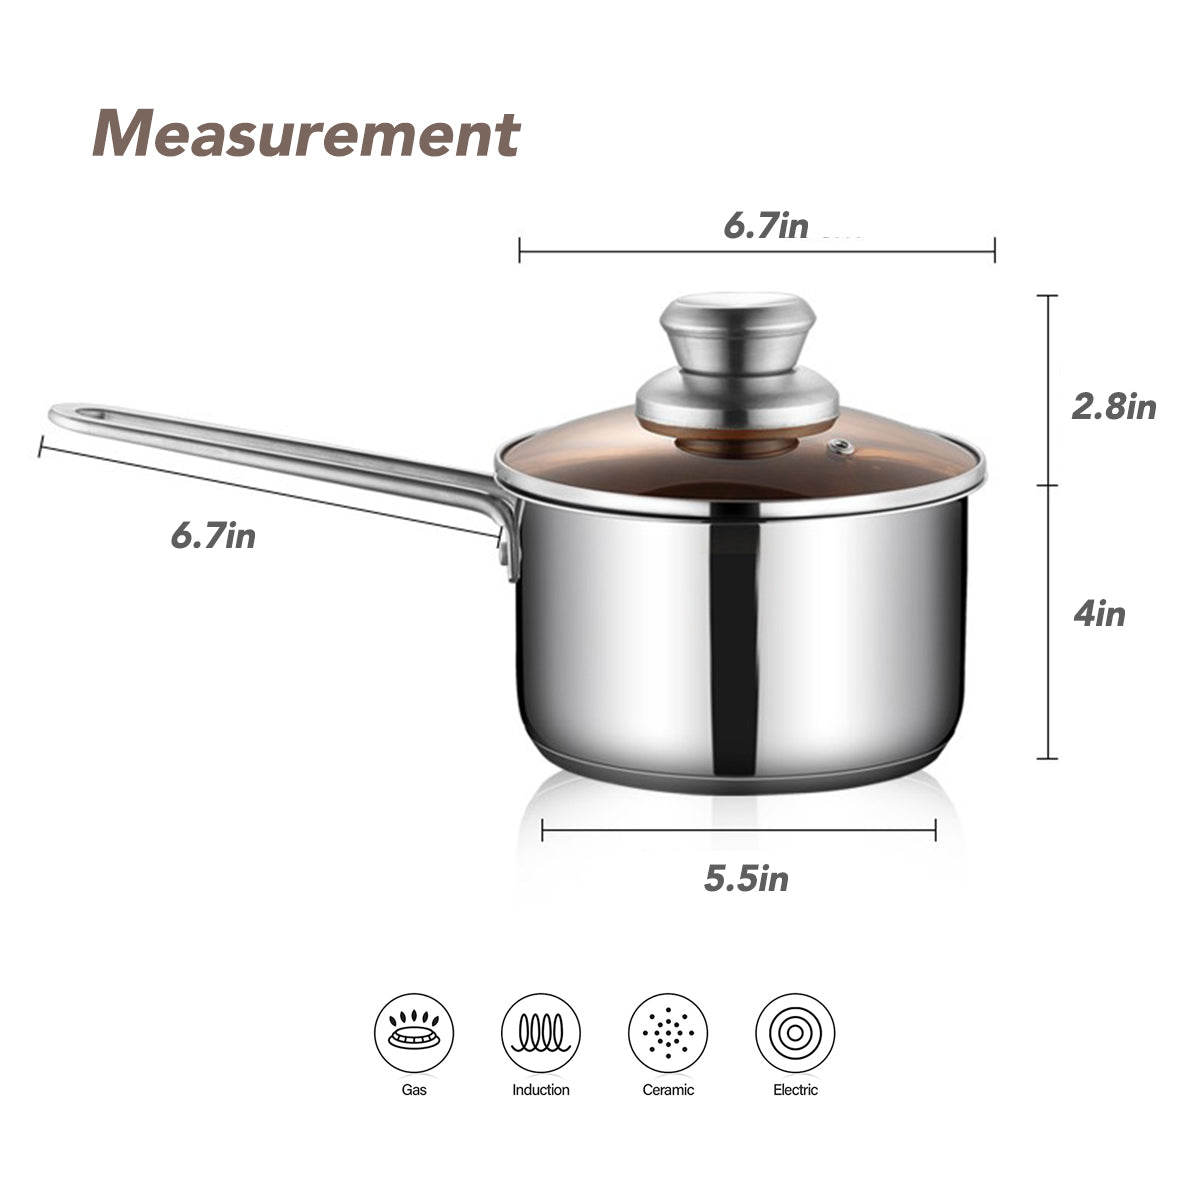 JBL 18cm Stainless Steel Milk Pan